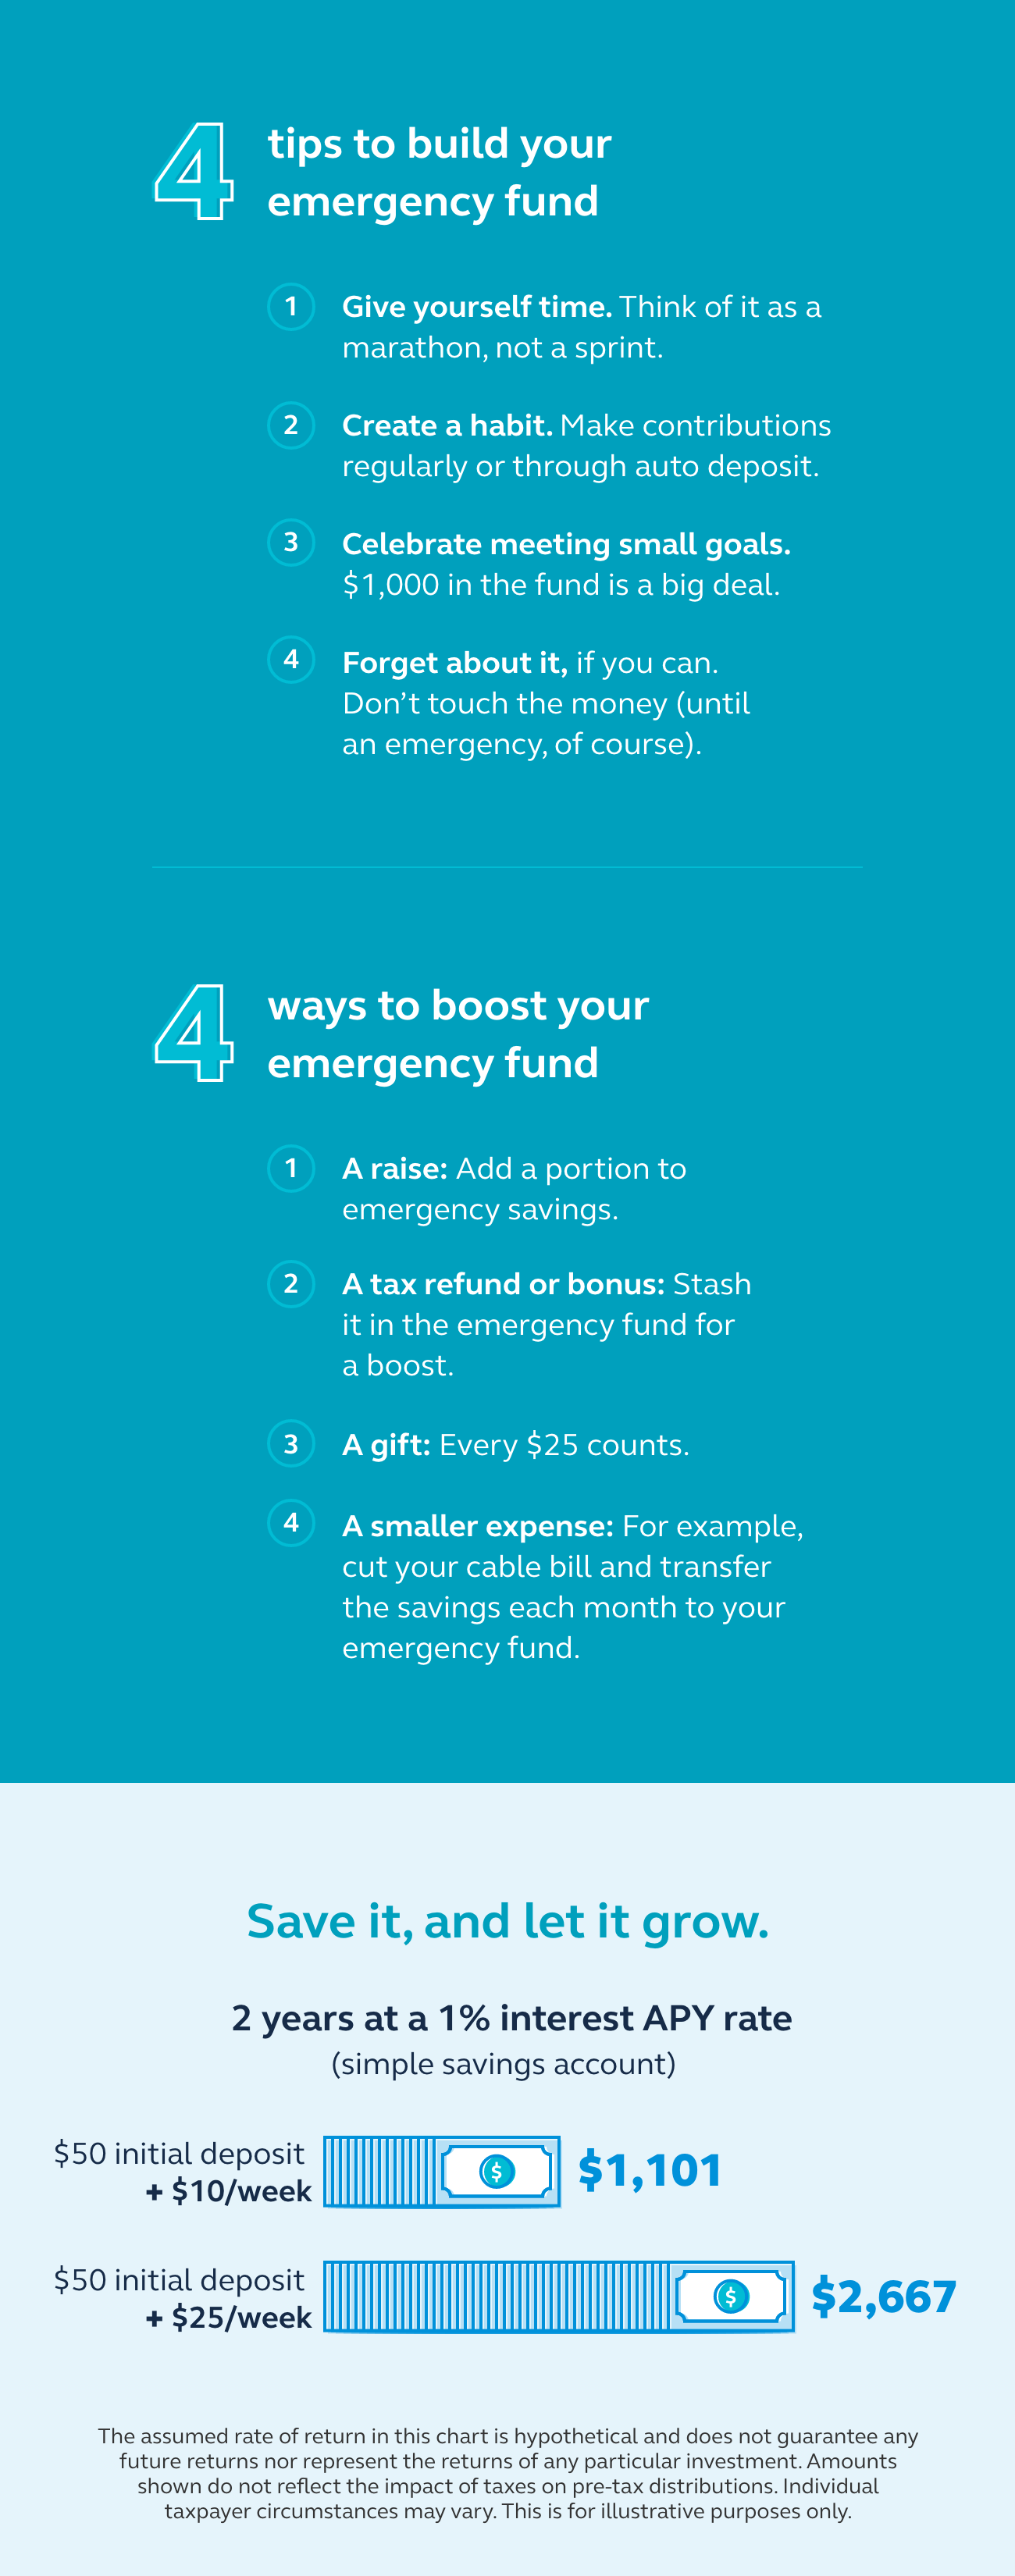 Graphic showing 4 tips to build your emergency fund and 4 ways to boost your emergency savings.